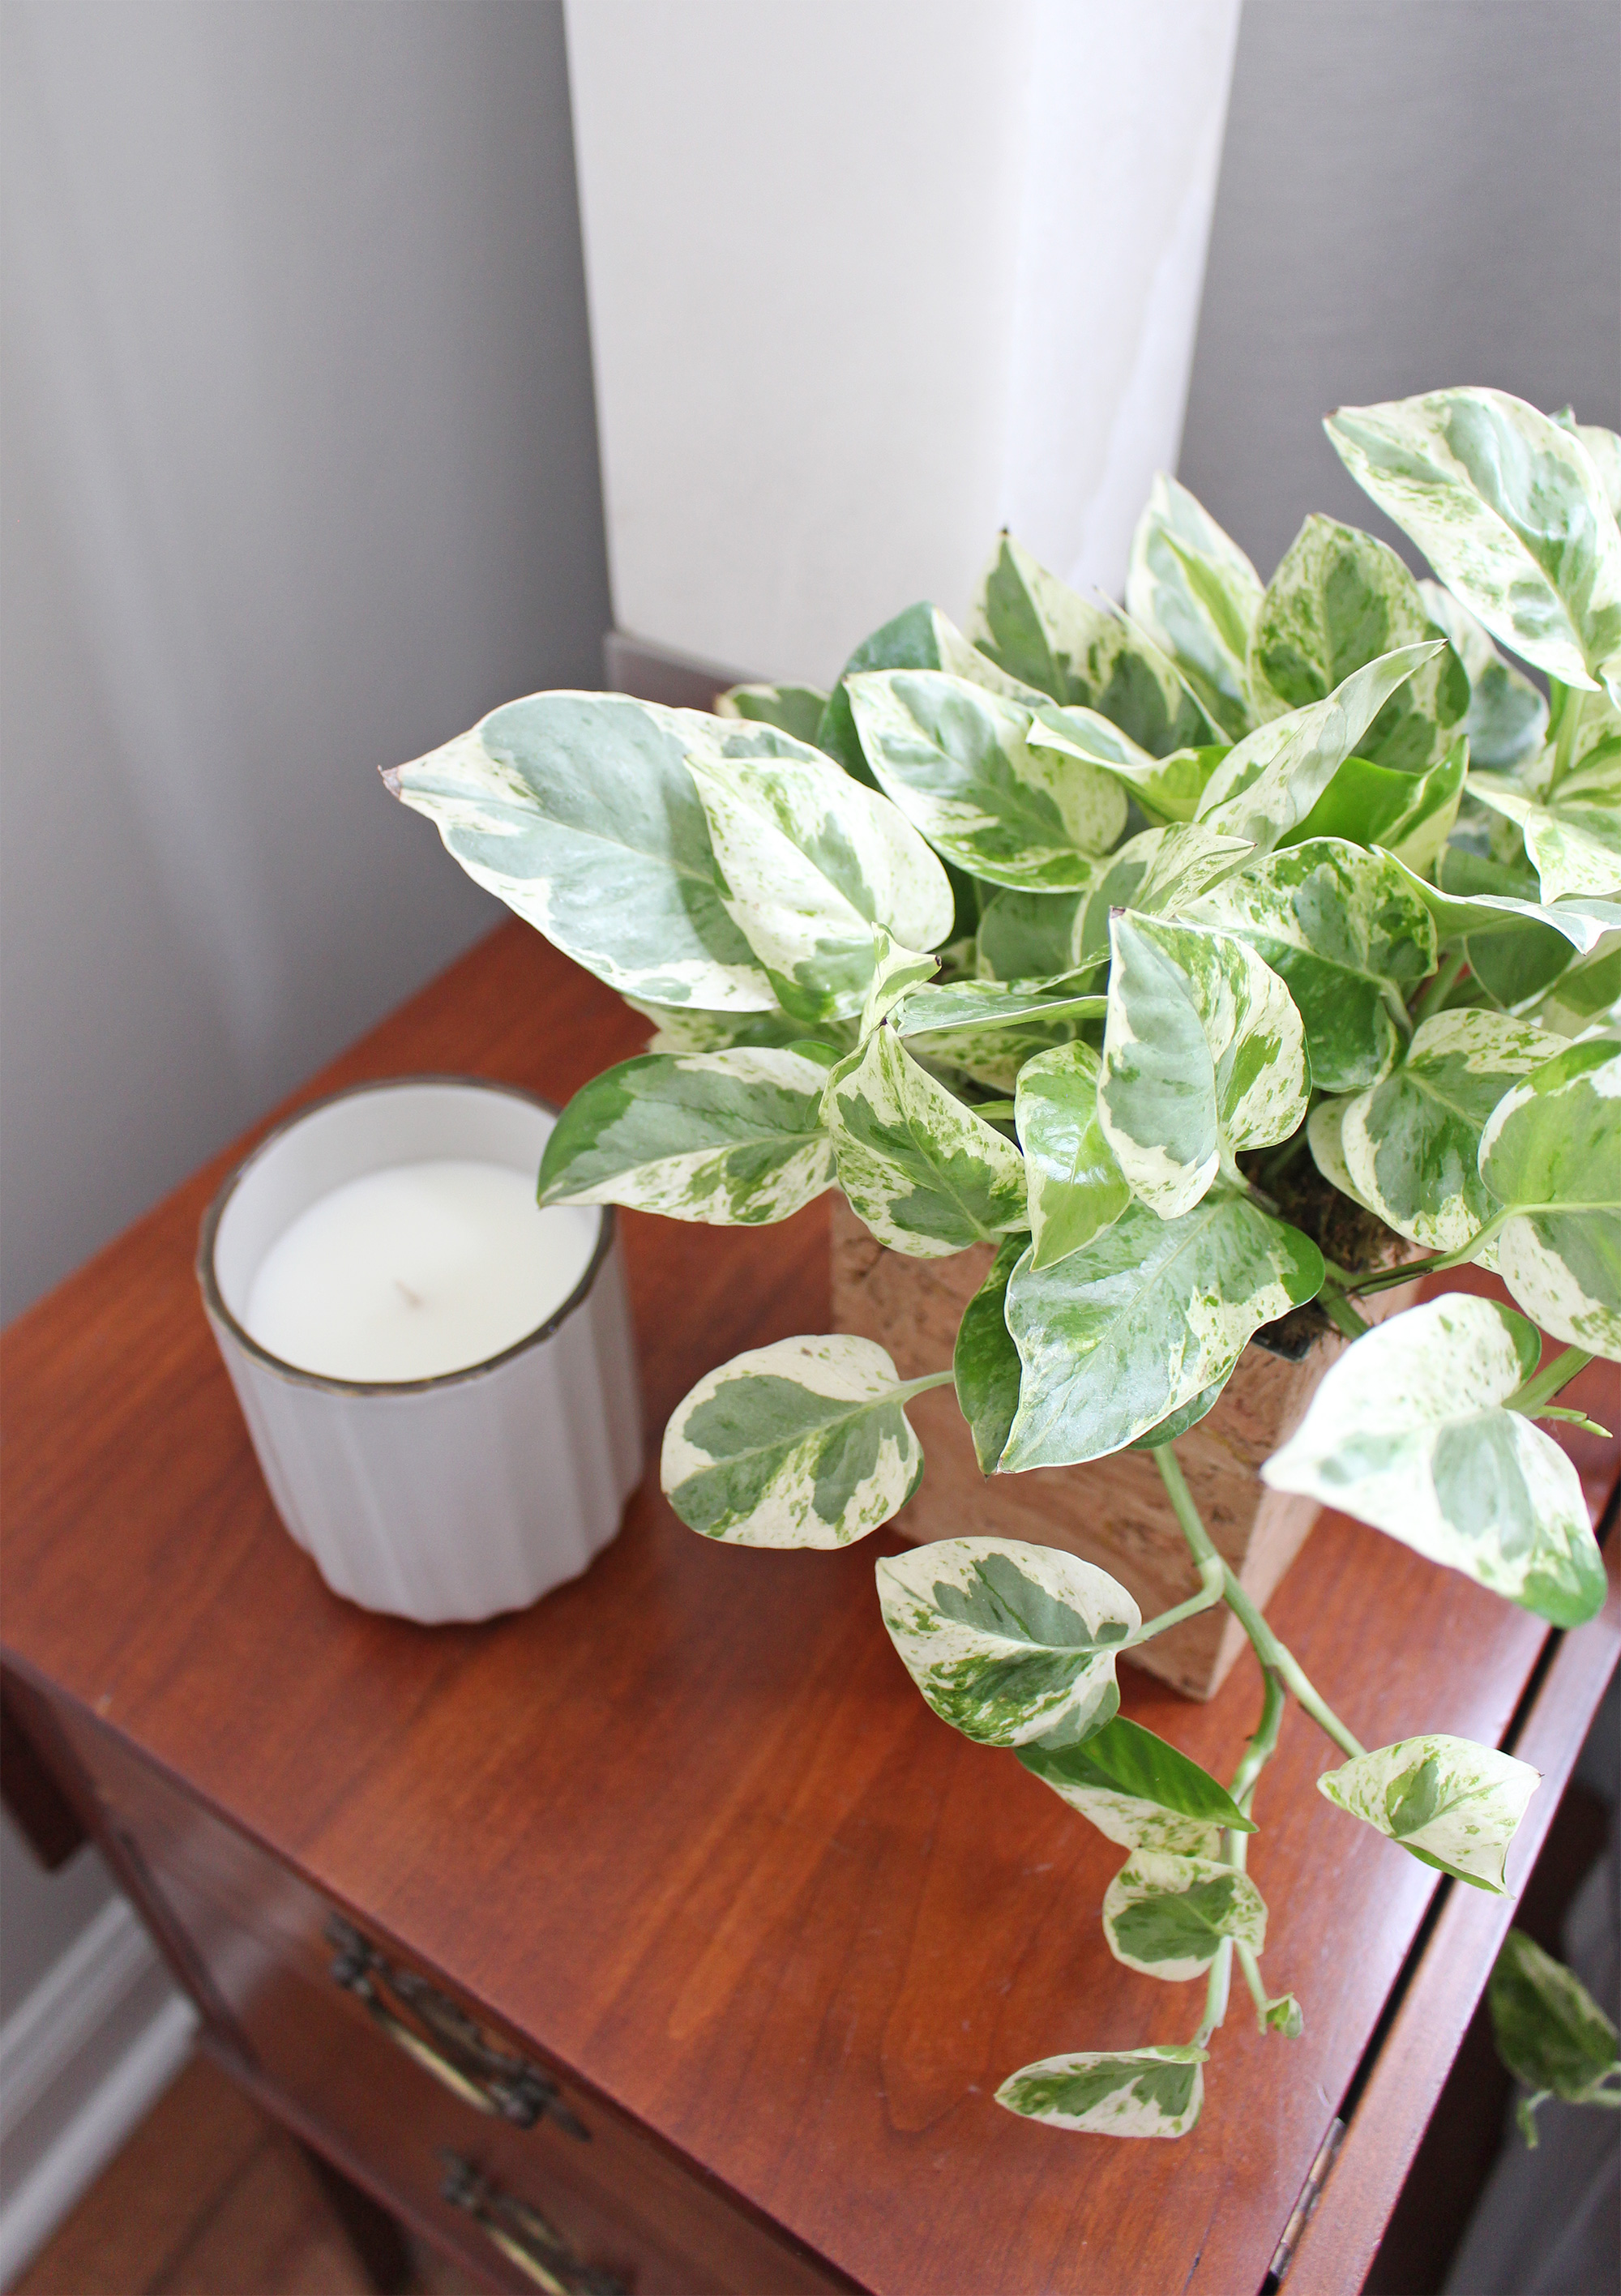 Pearls and Jade Pothos. Check out this blog post devoted to all-things indoor plants, my favorite easy-care houseplants, and where to find planters and pots for them.